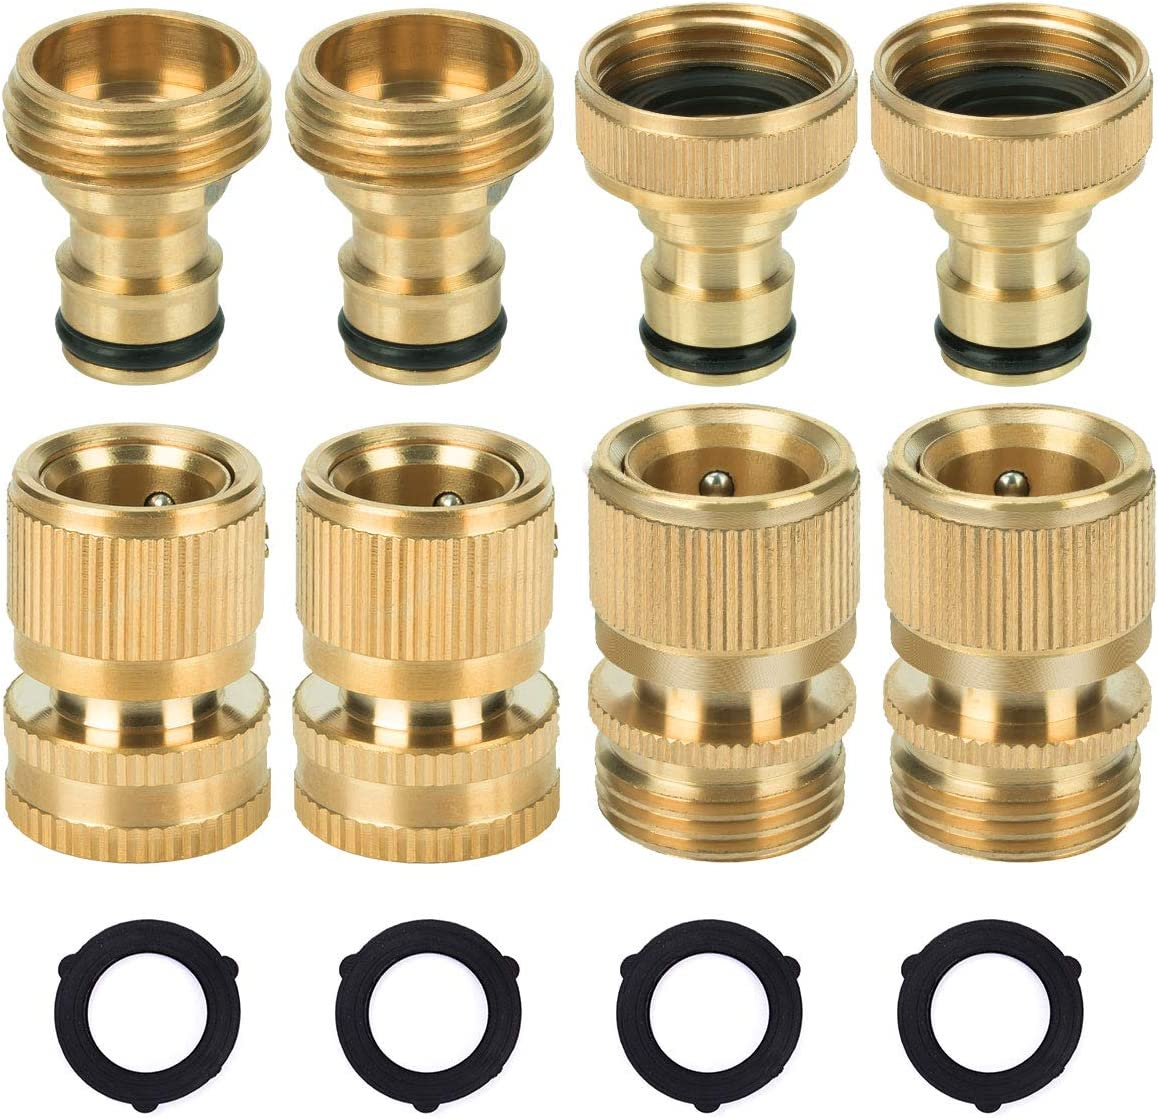 8PCS Garden Hose Quick Connector, 3/4 inch GHT Solid Brass Water Hose Thread Fittings, Easy Connect & Disconnect Adapters, Male and Female(2+2 Pairs)